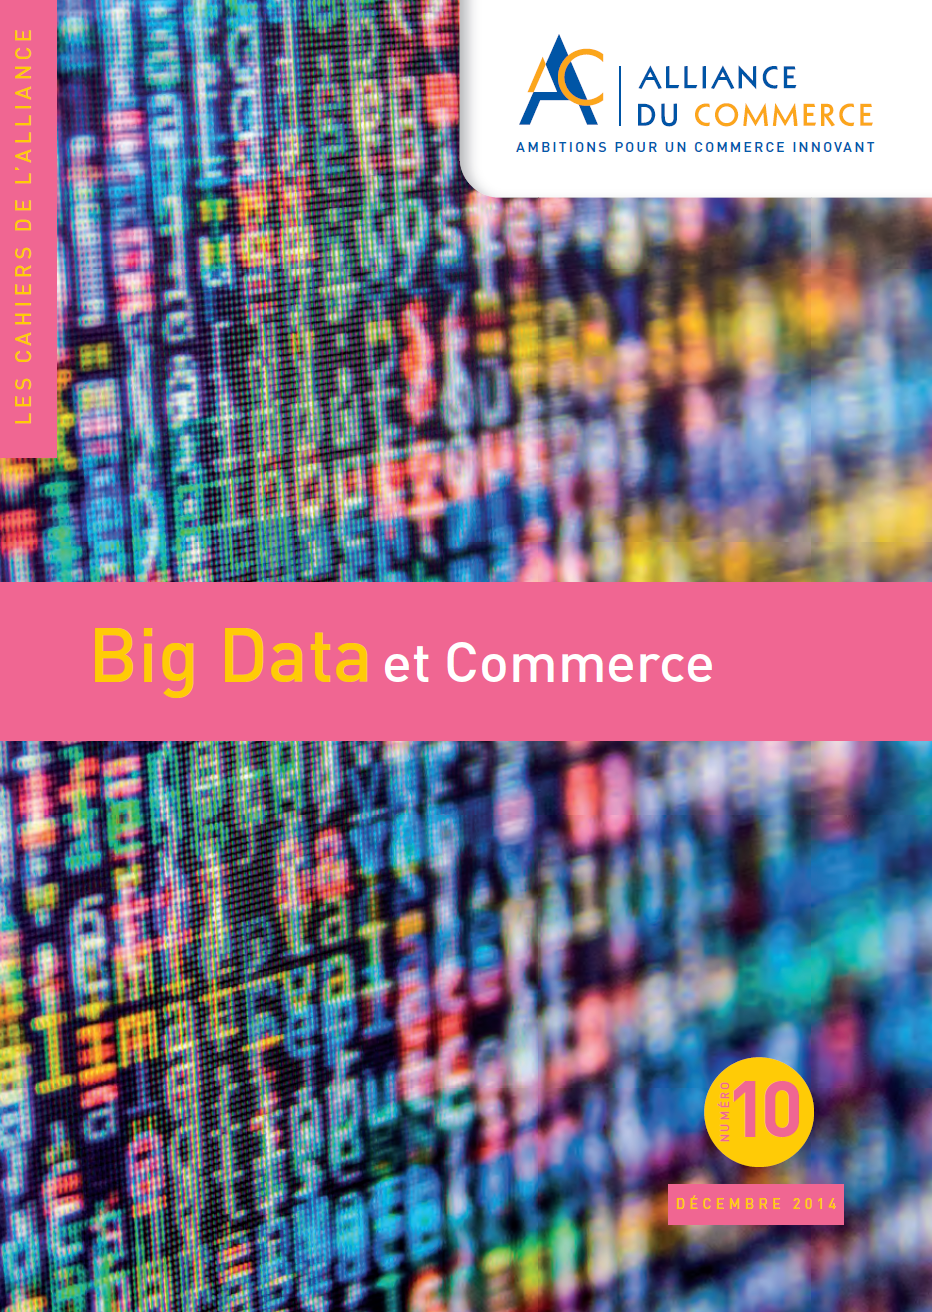 Big data et commerce